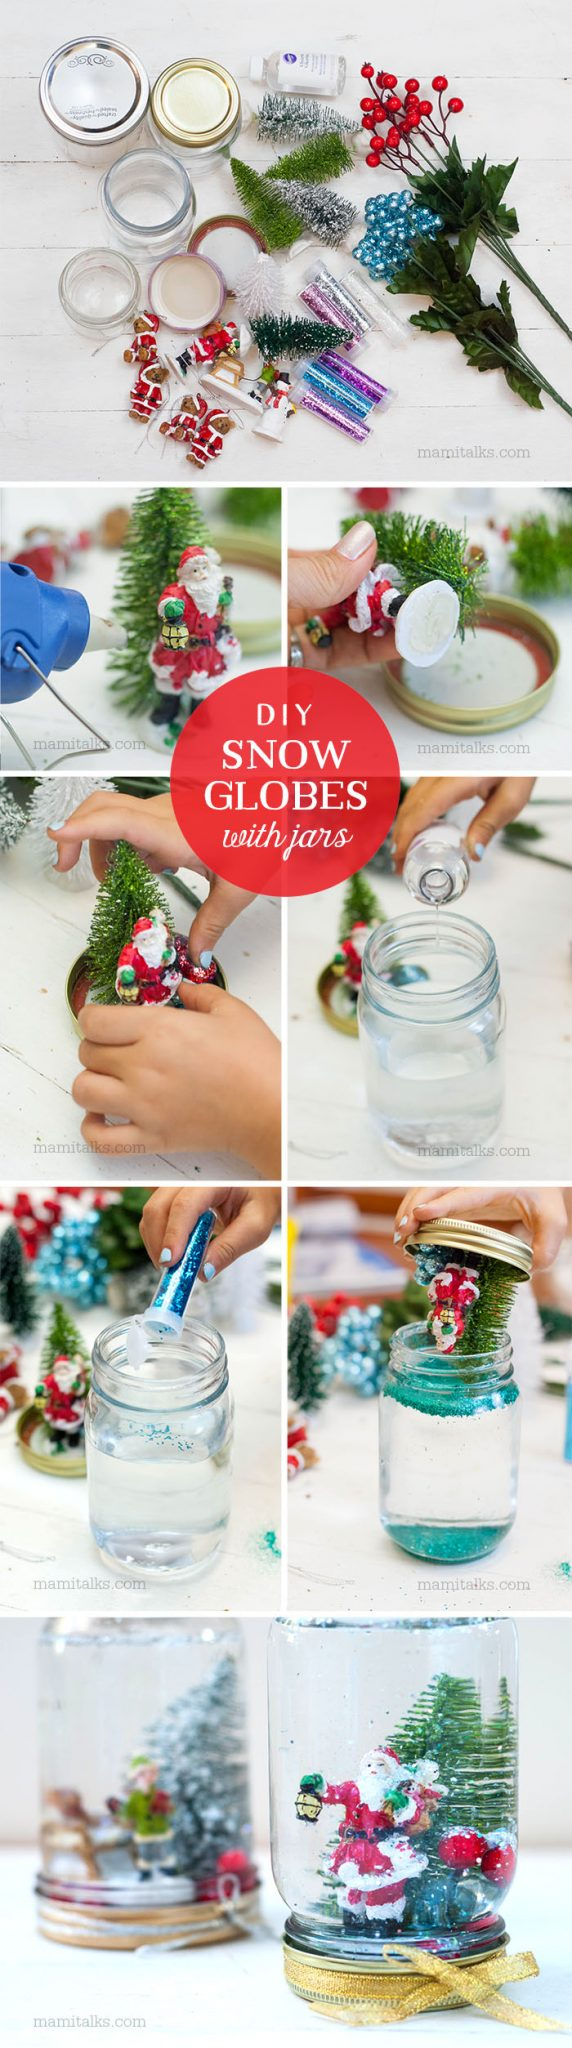 DIY Snow globes with jars steps. -MamiTalks.com